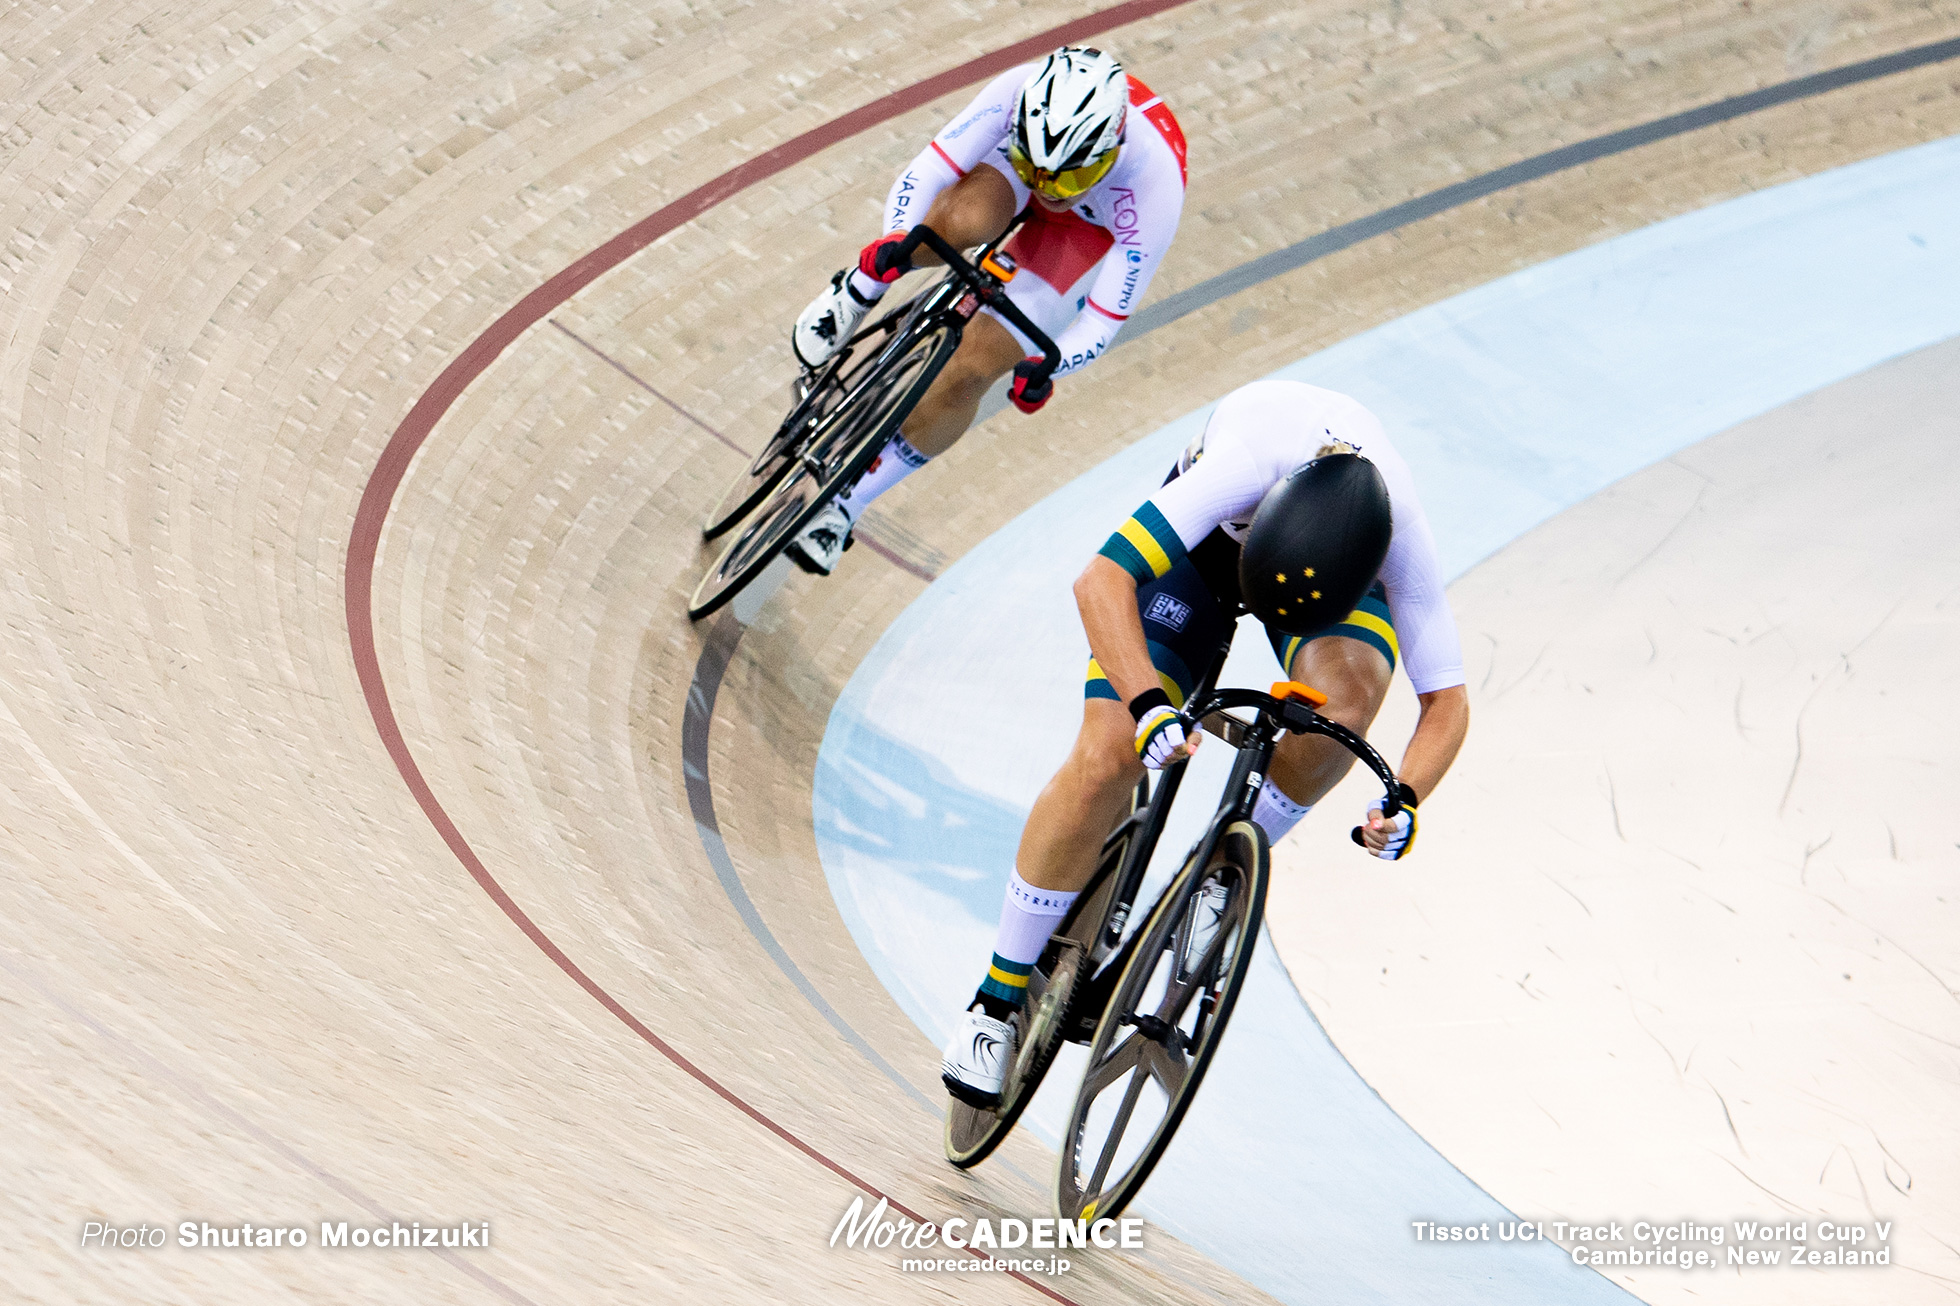 Elimination / Women's Omnium / Track Cycling World Cup V / Cambridge, New Zealand